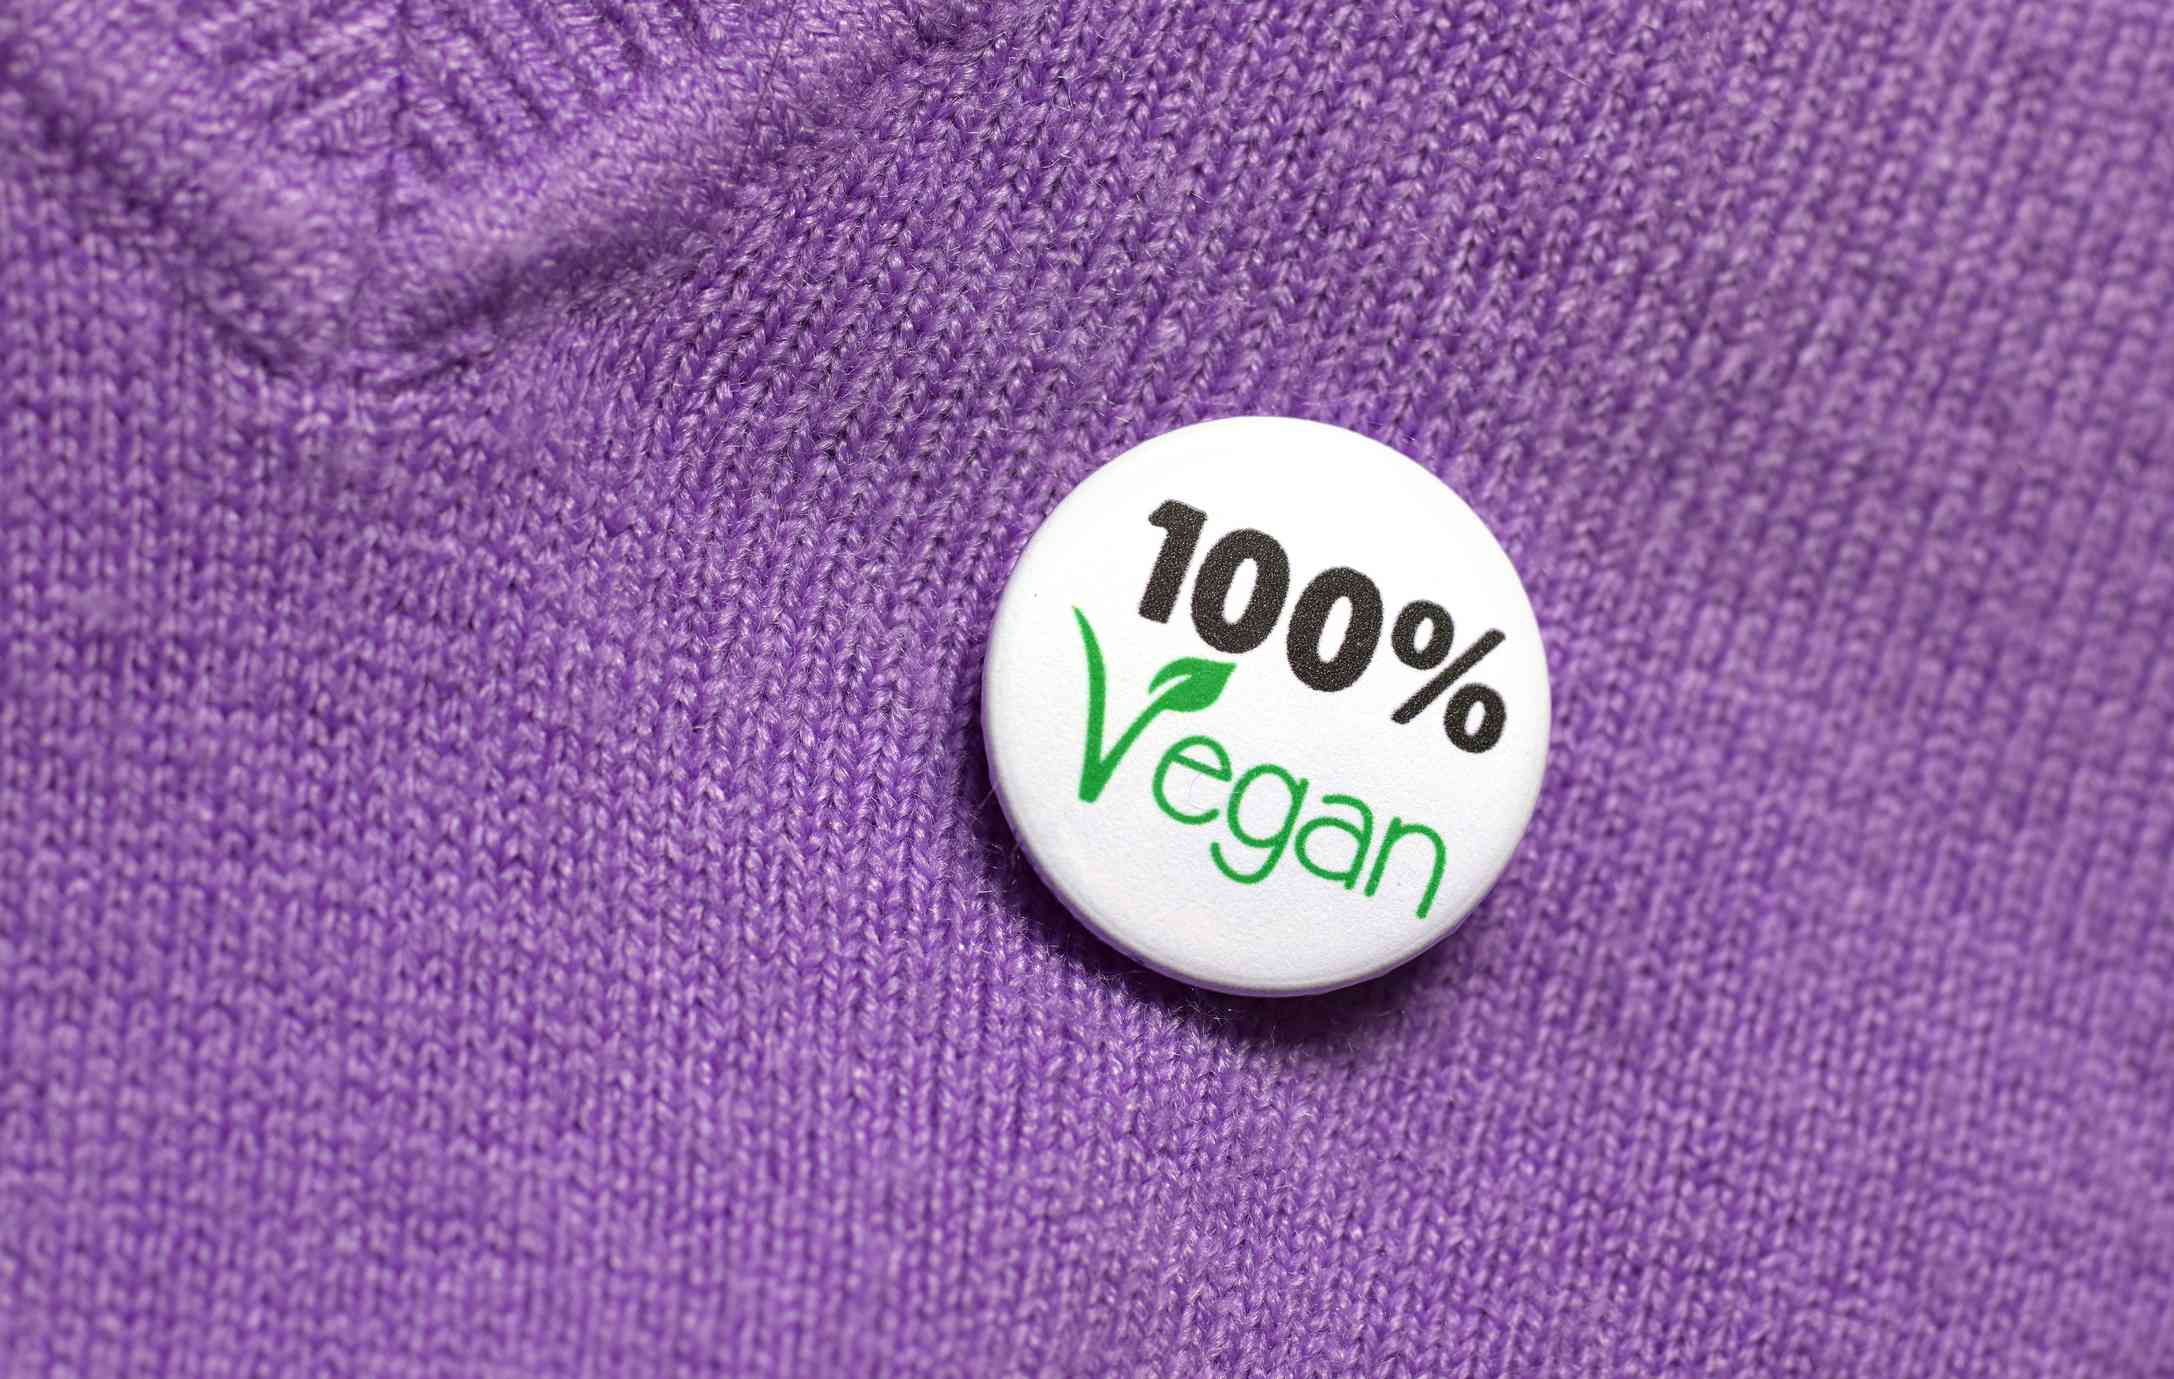 A purple sweater with a button that says 100% vegan.